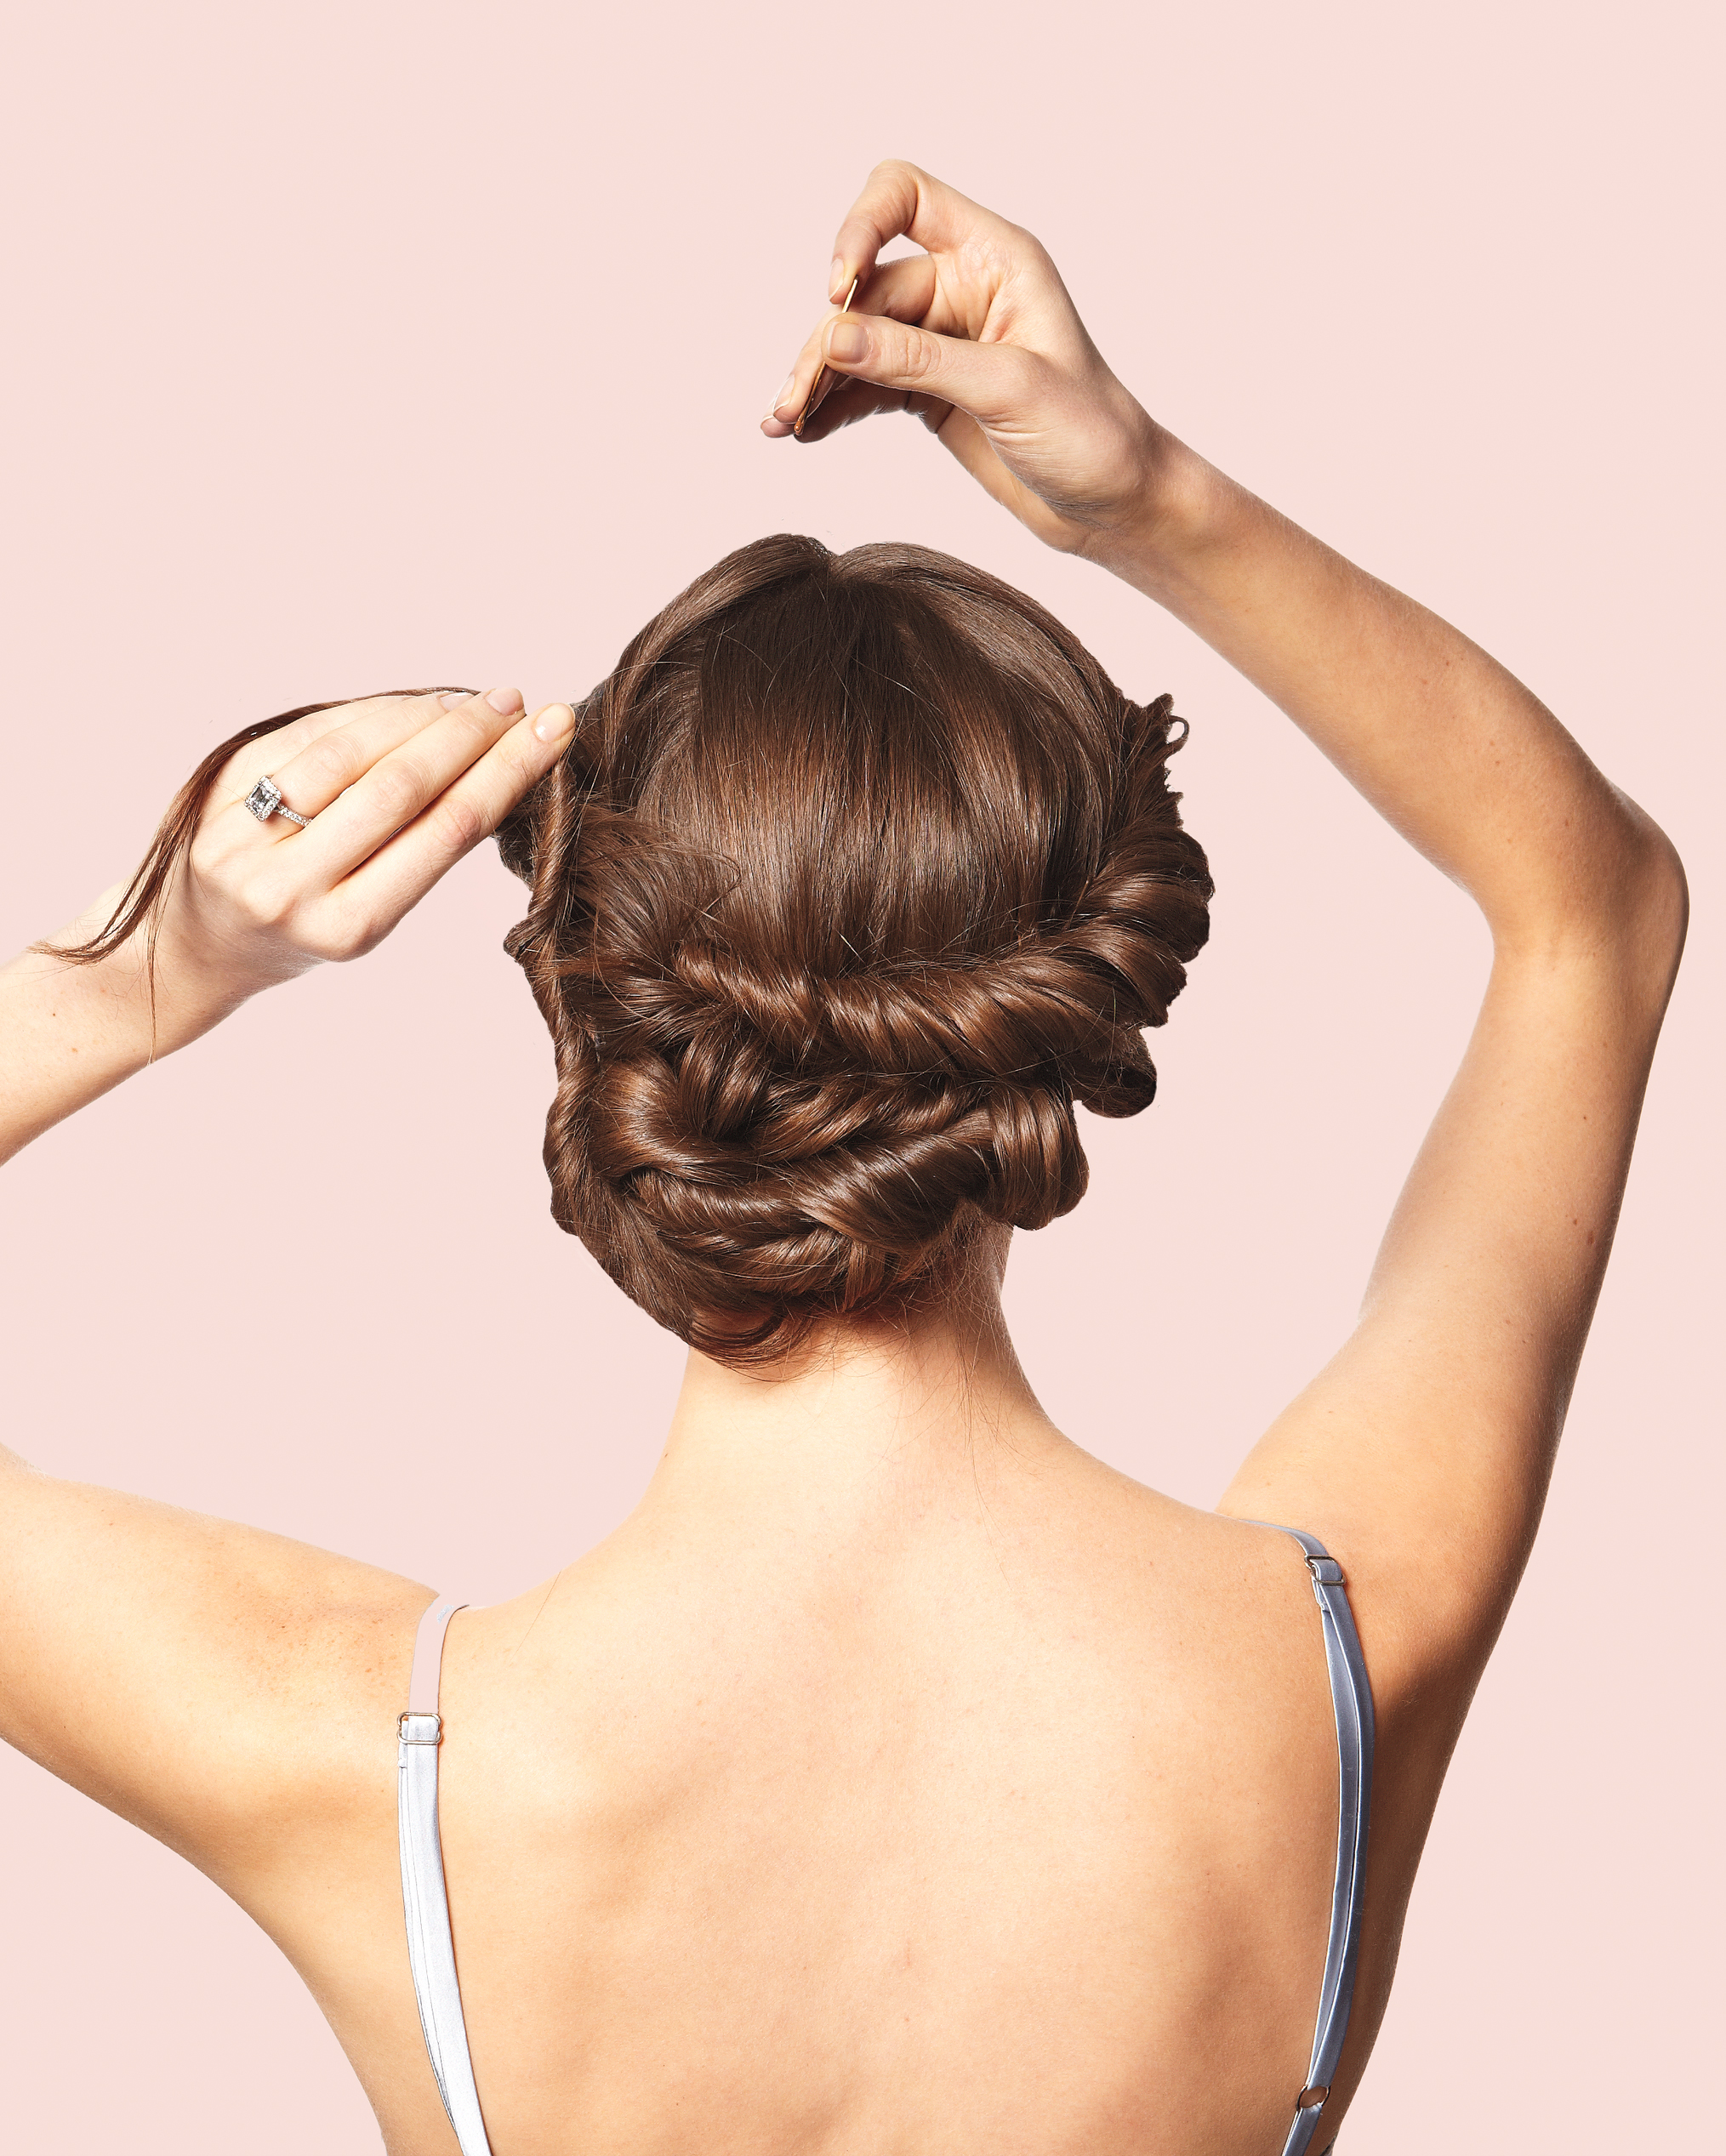 10 Tips To Hiring a Wedding Hairstylist